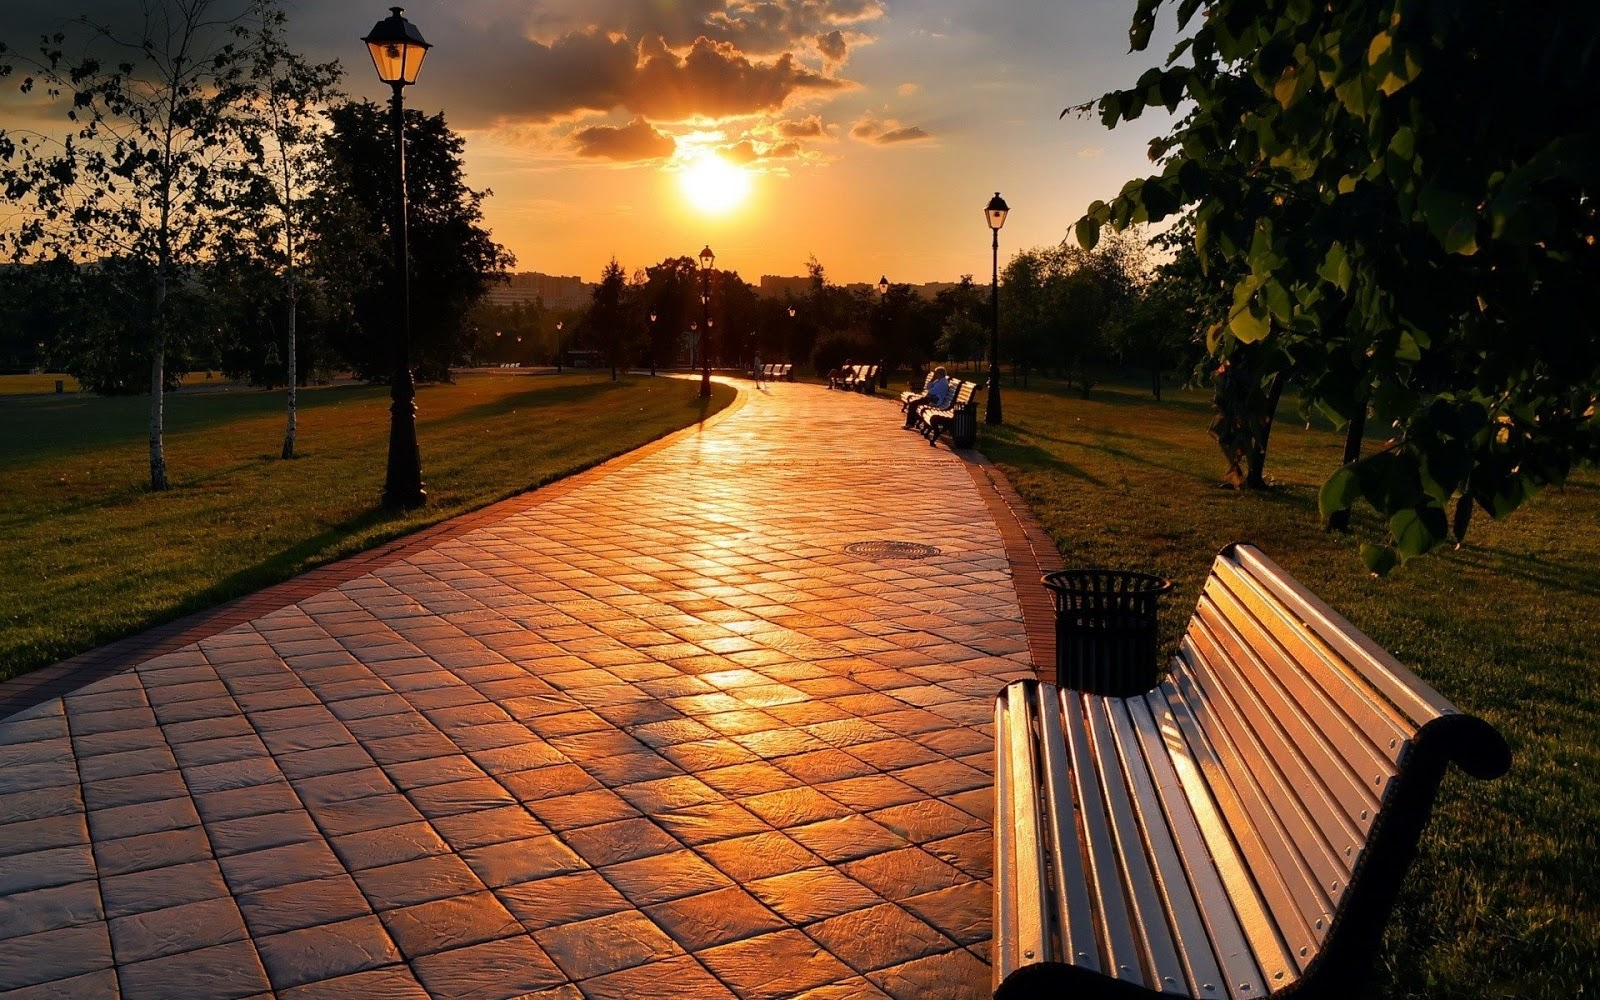 Sunset Park Benches